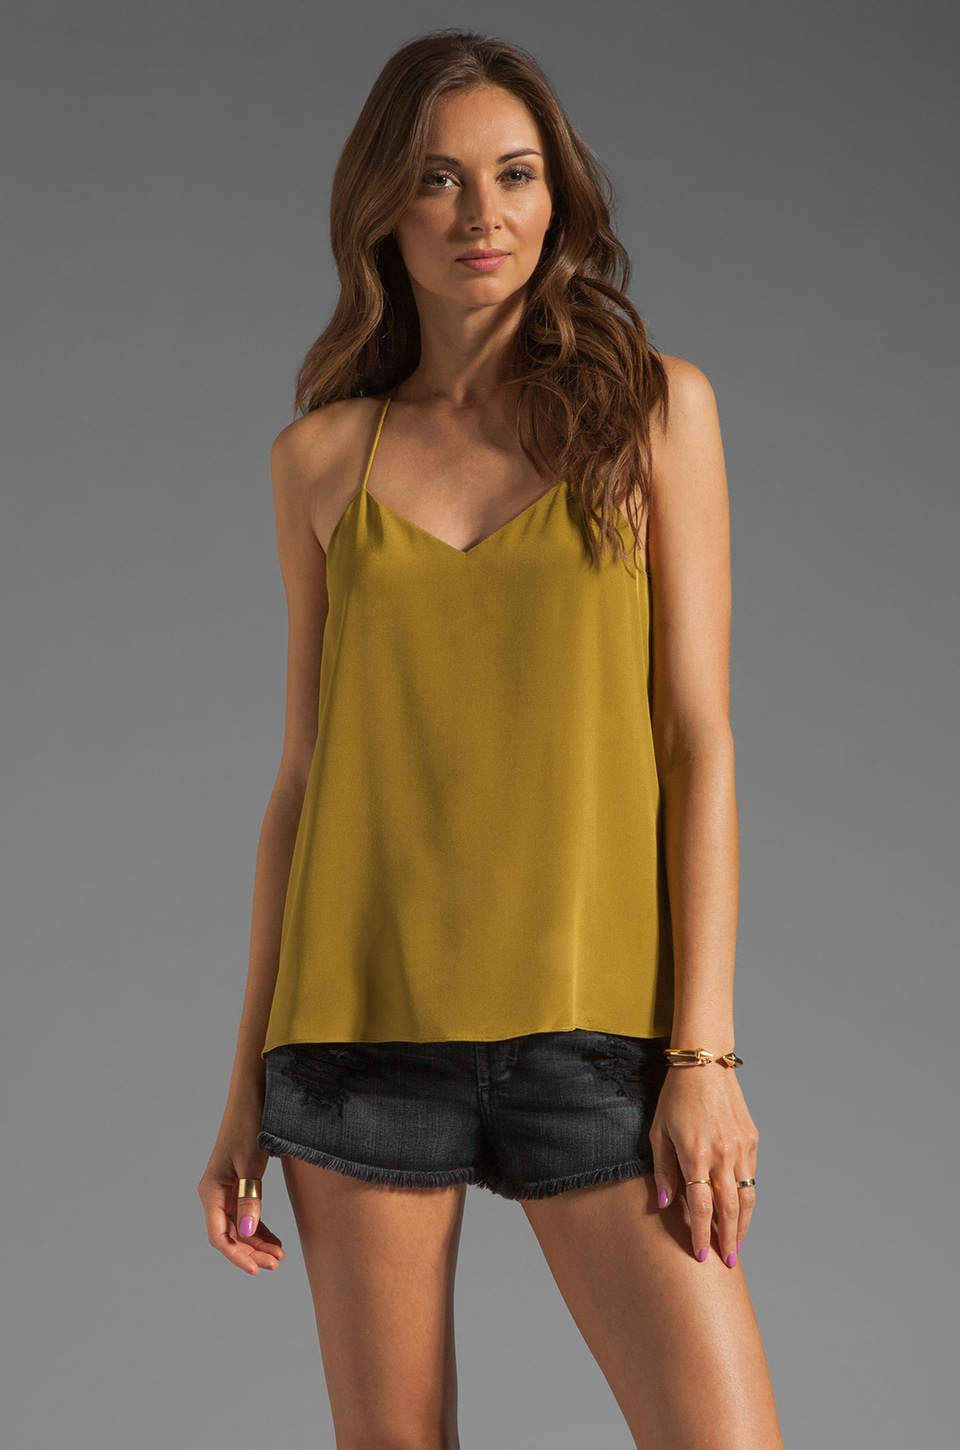 Tibi Silk Cami in Olive